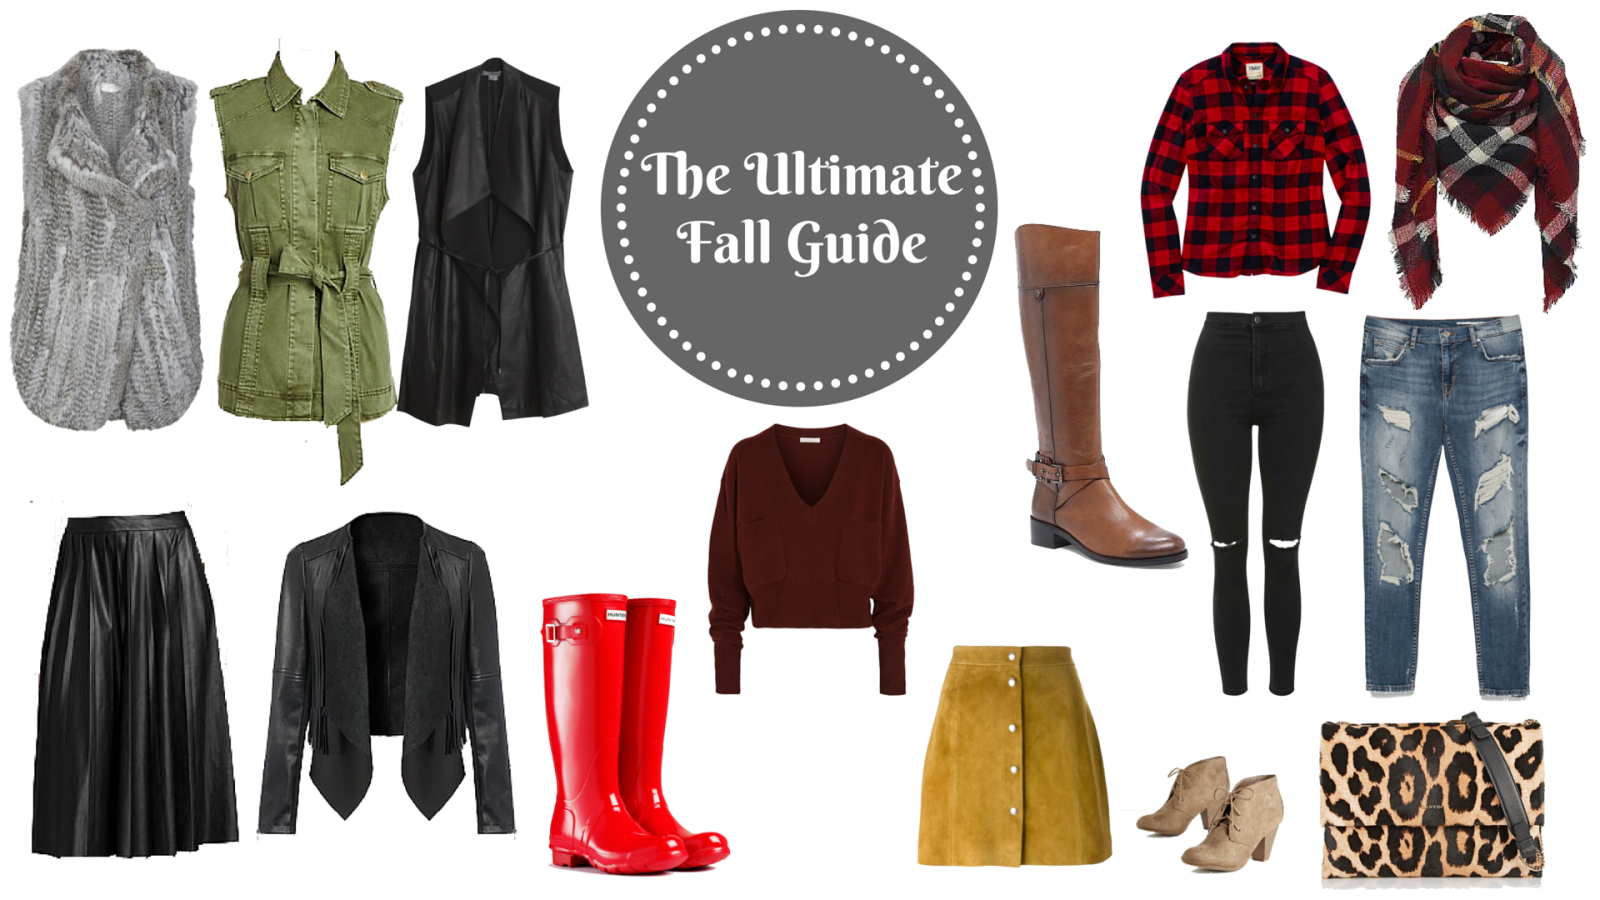 OverExposed_The Ultimate Fall Guide